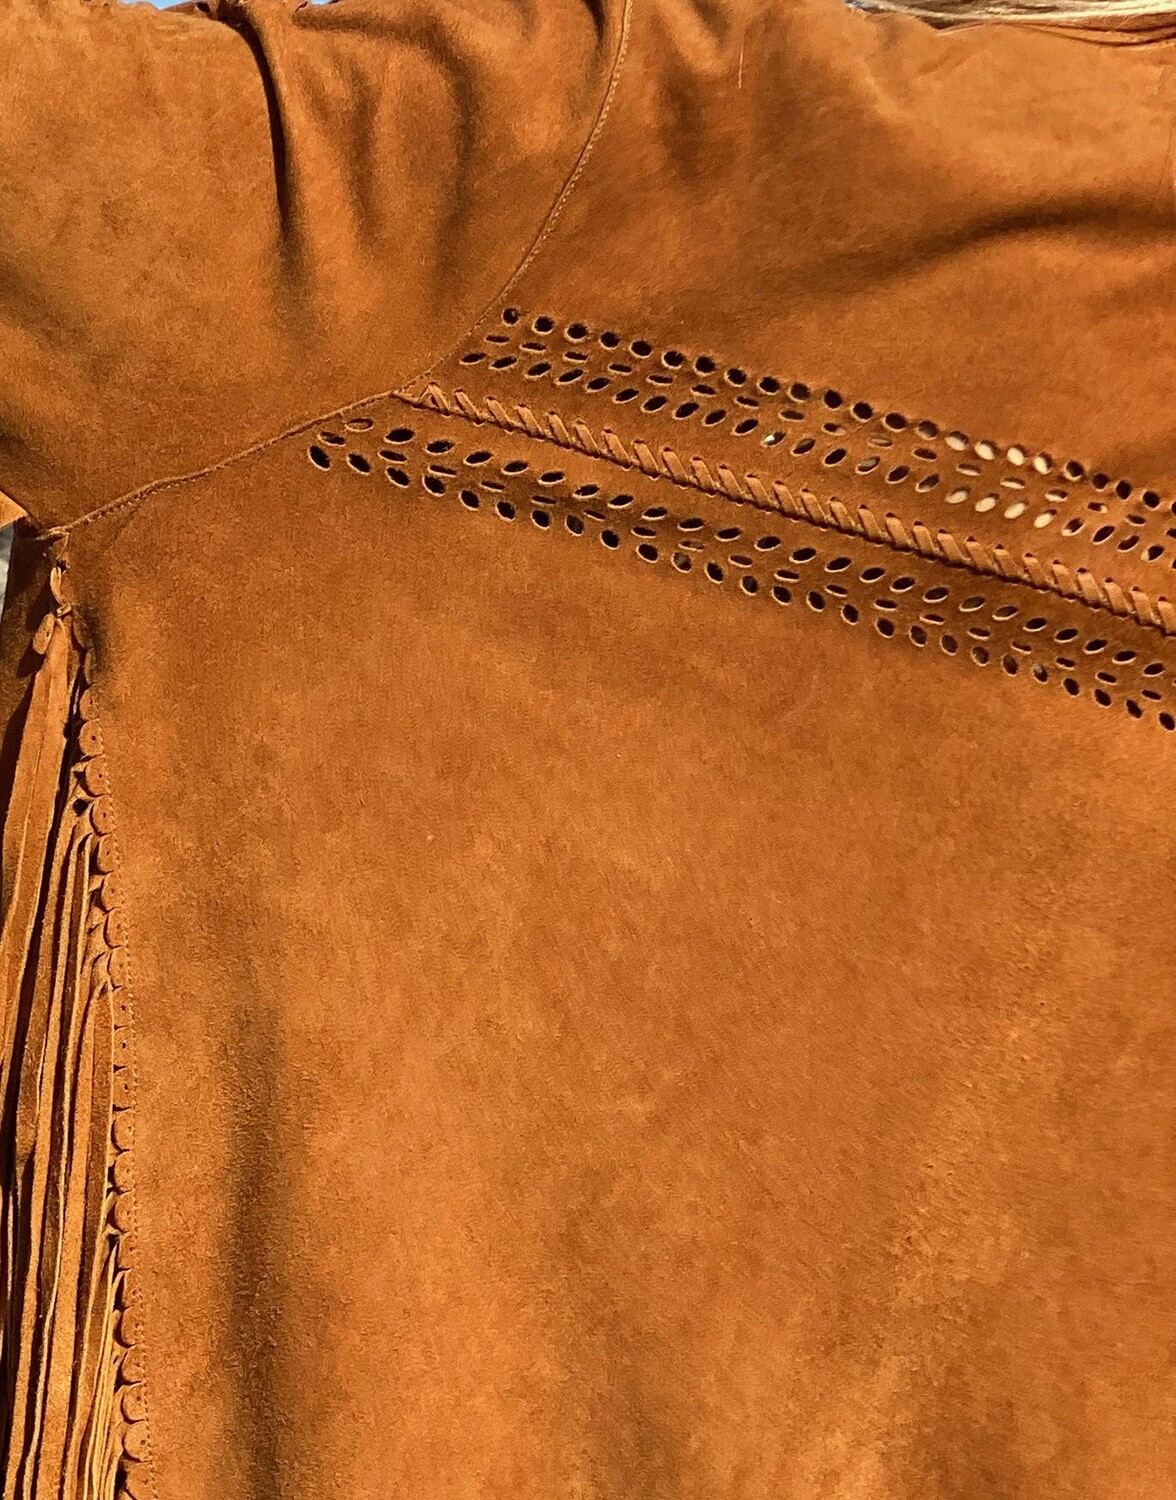 FRINGED JACKET - COLOR TAN - 100% LAMB SUEDE